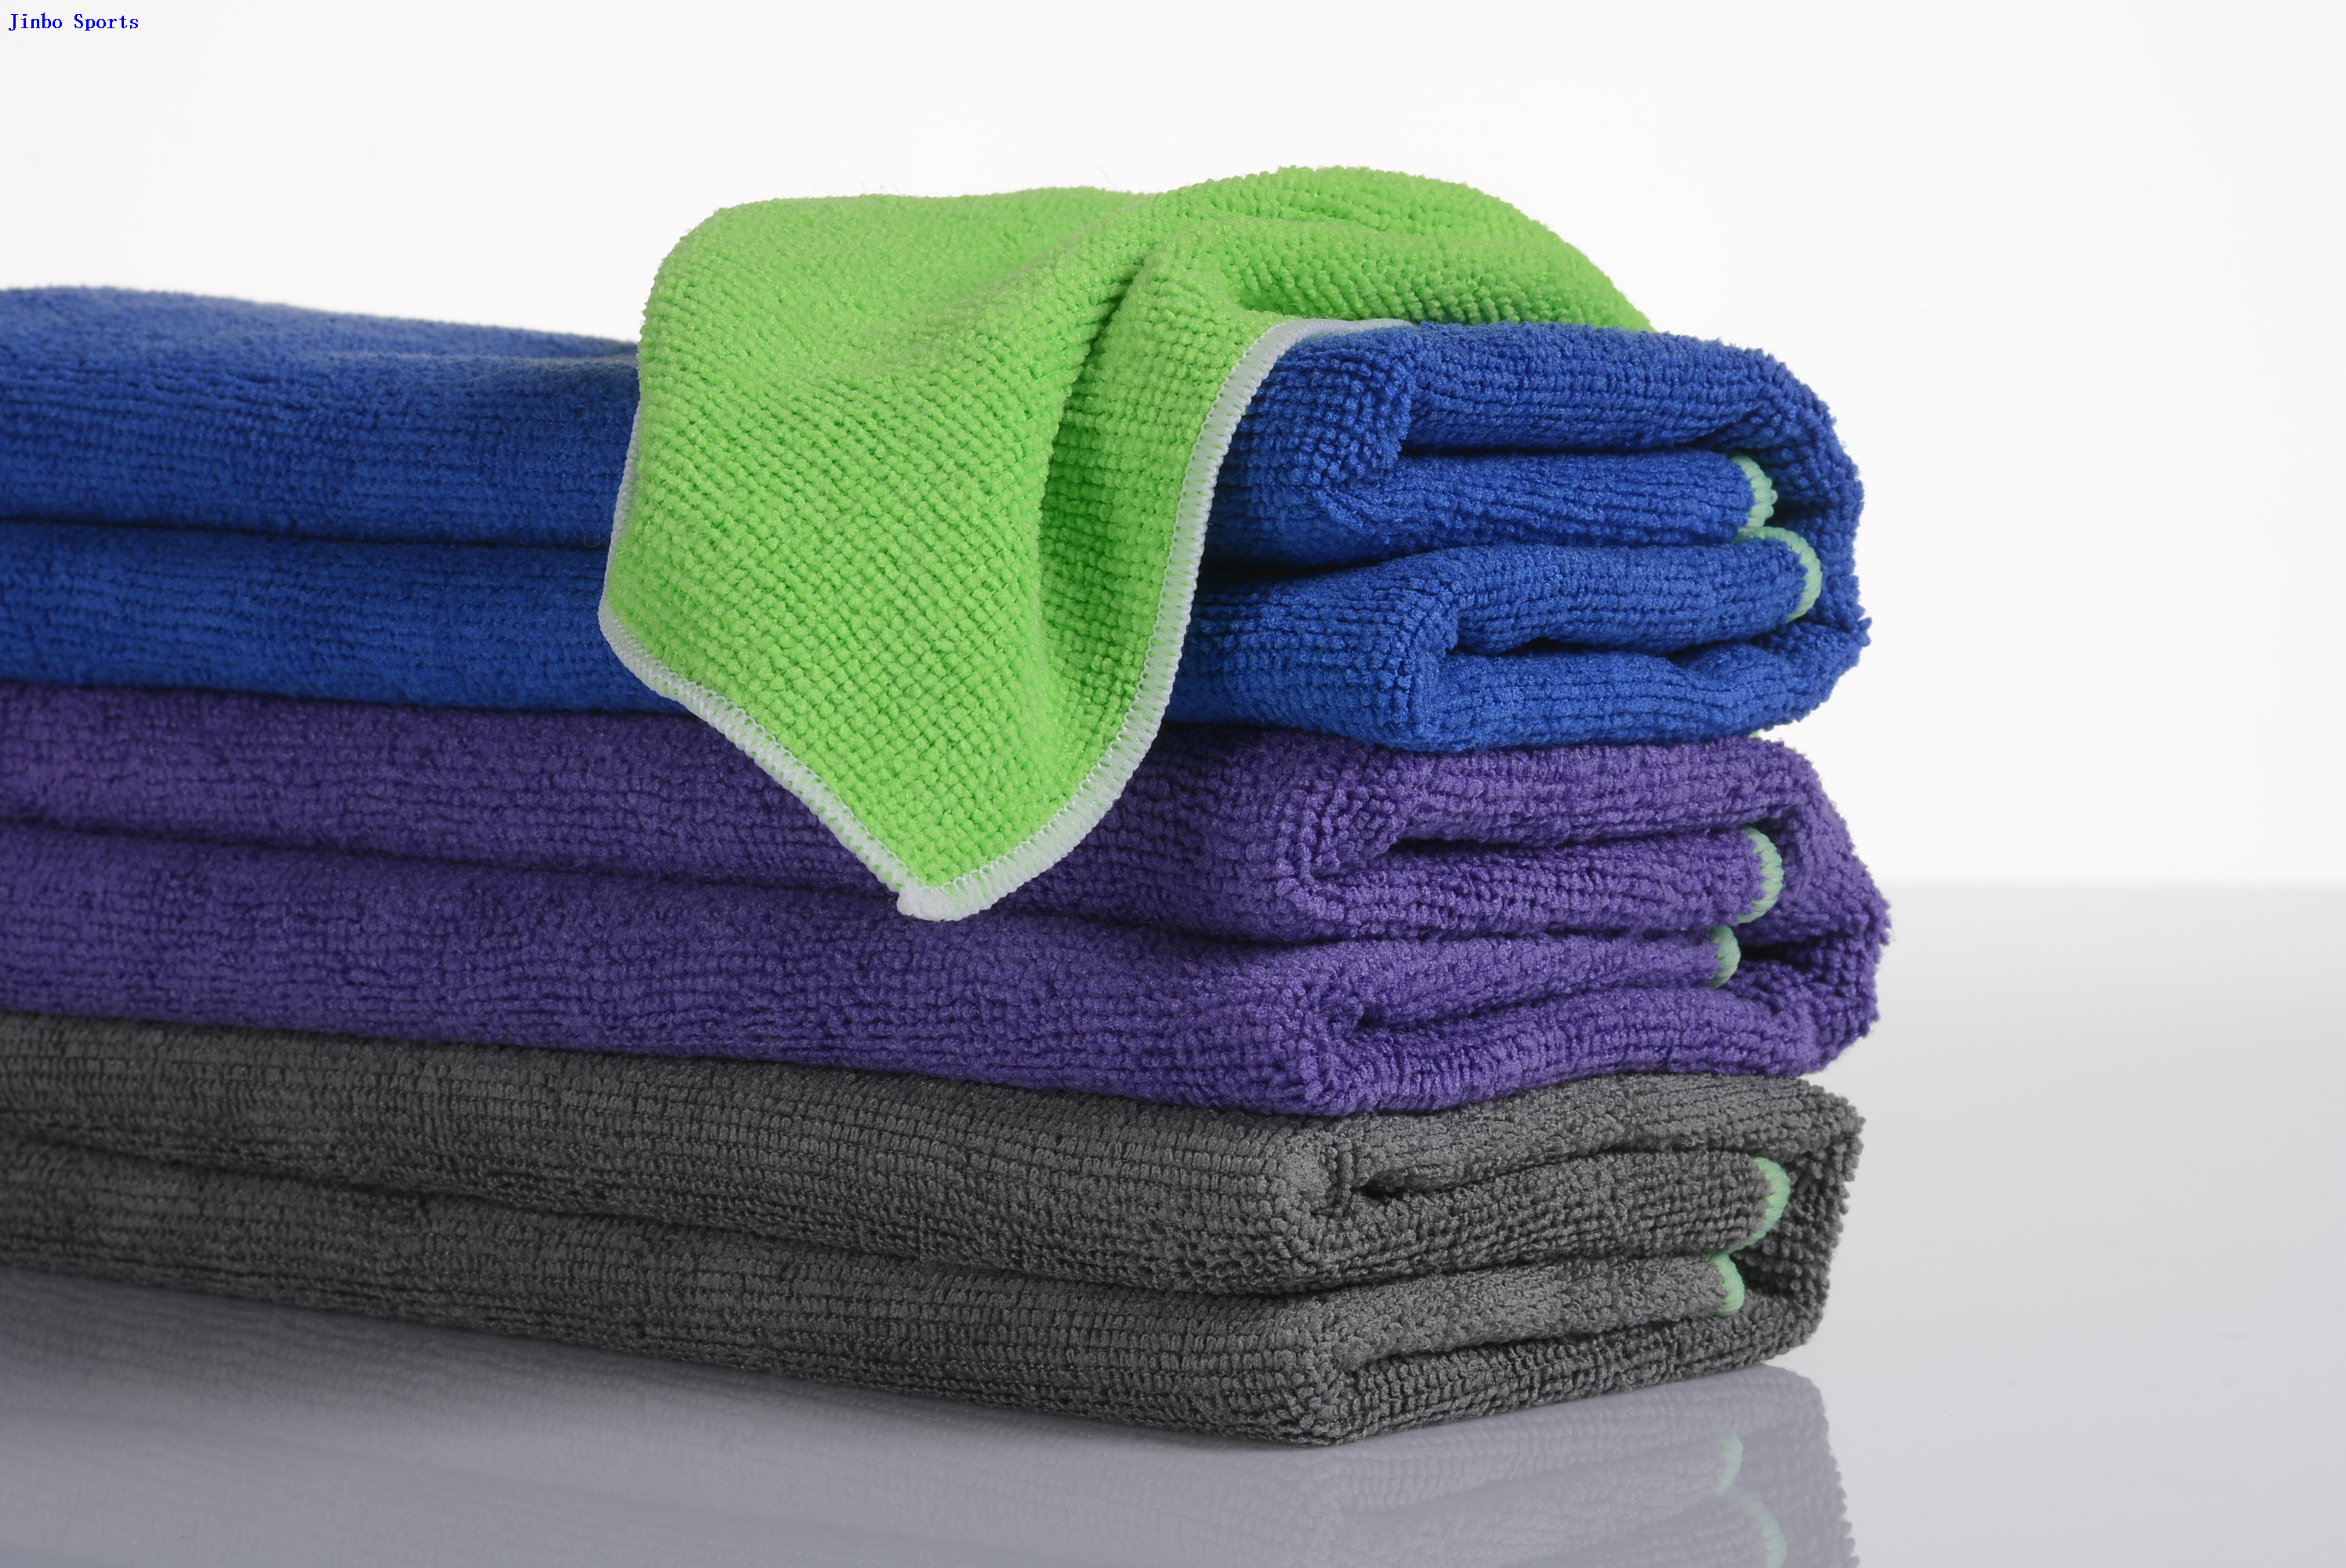 Light Weight Strong Absorbent Soft To Touch Skin Swimming Towels